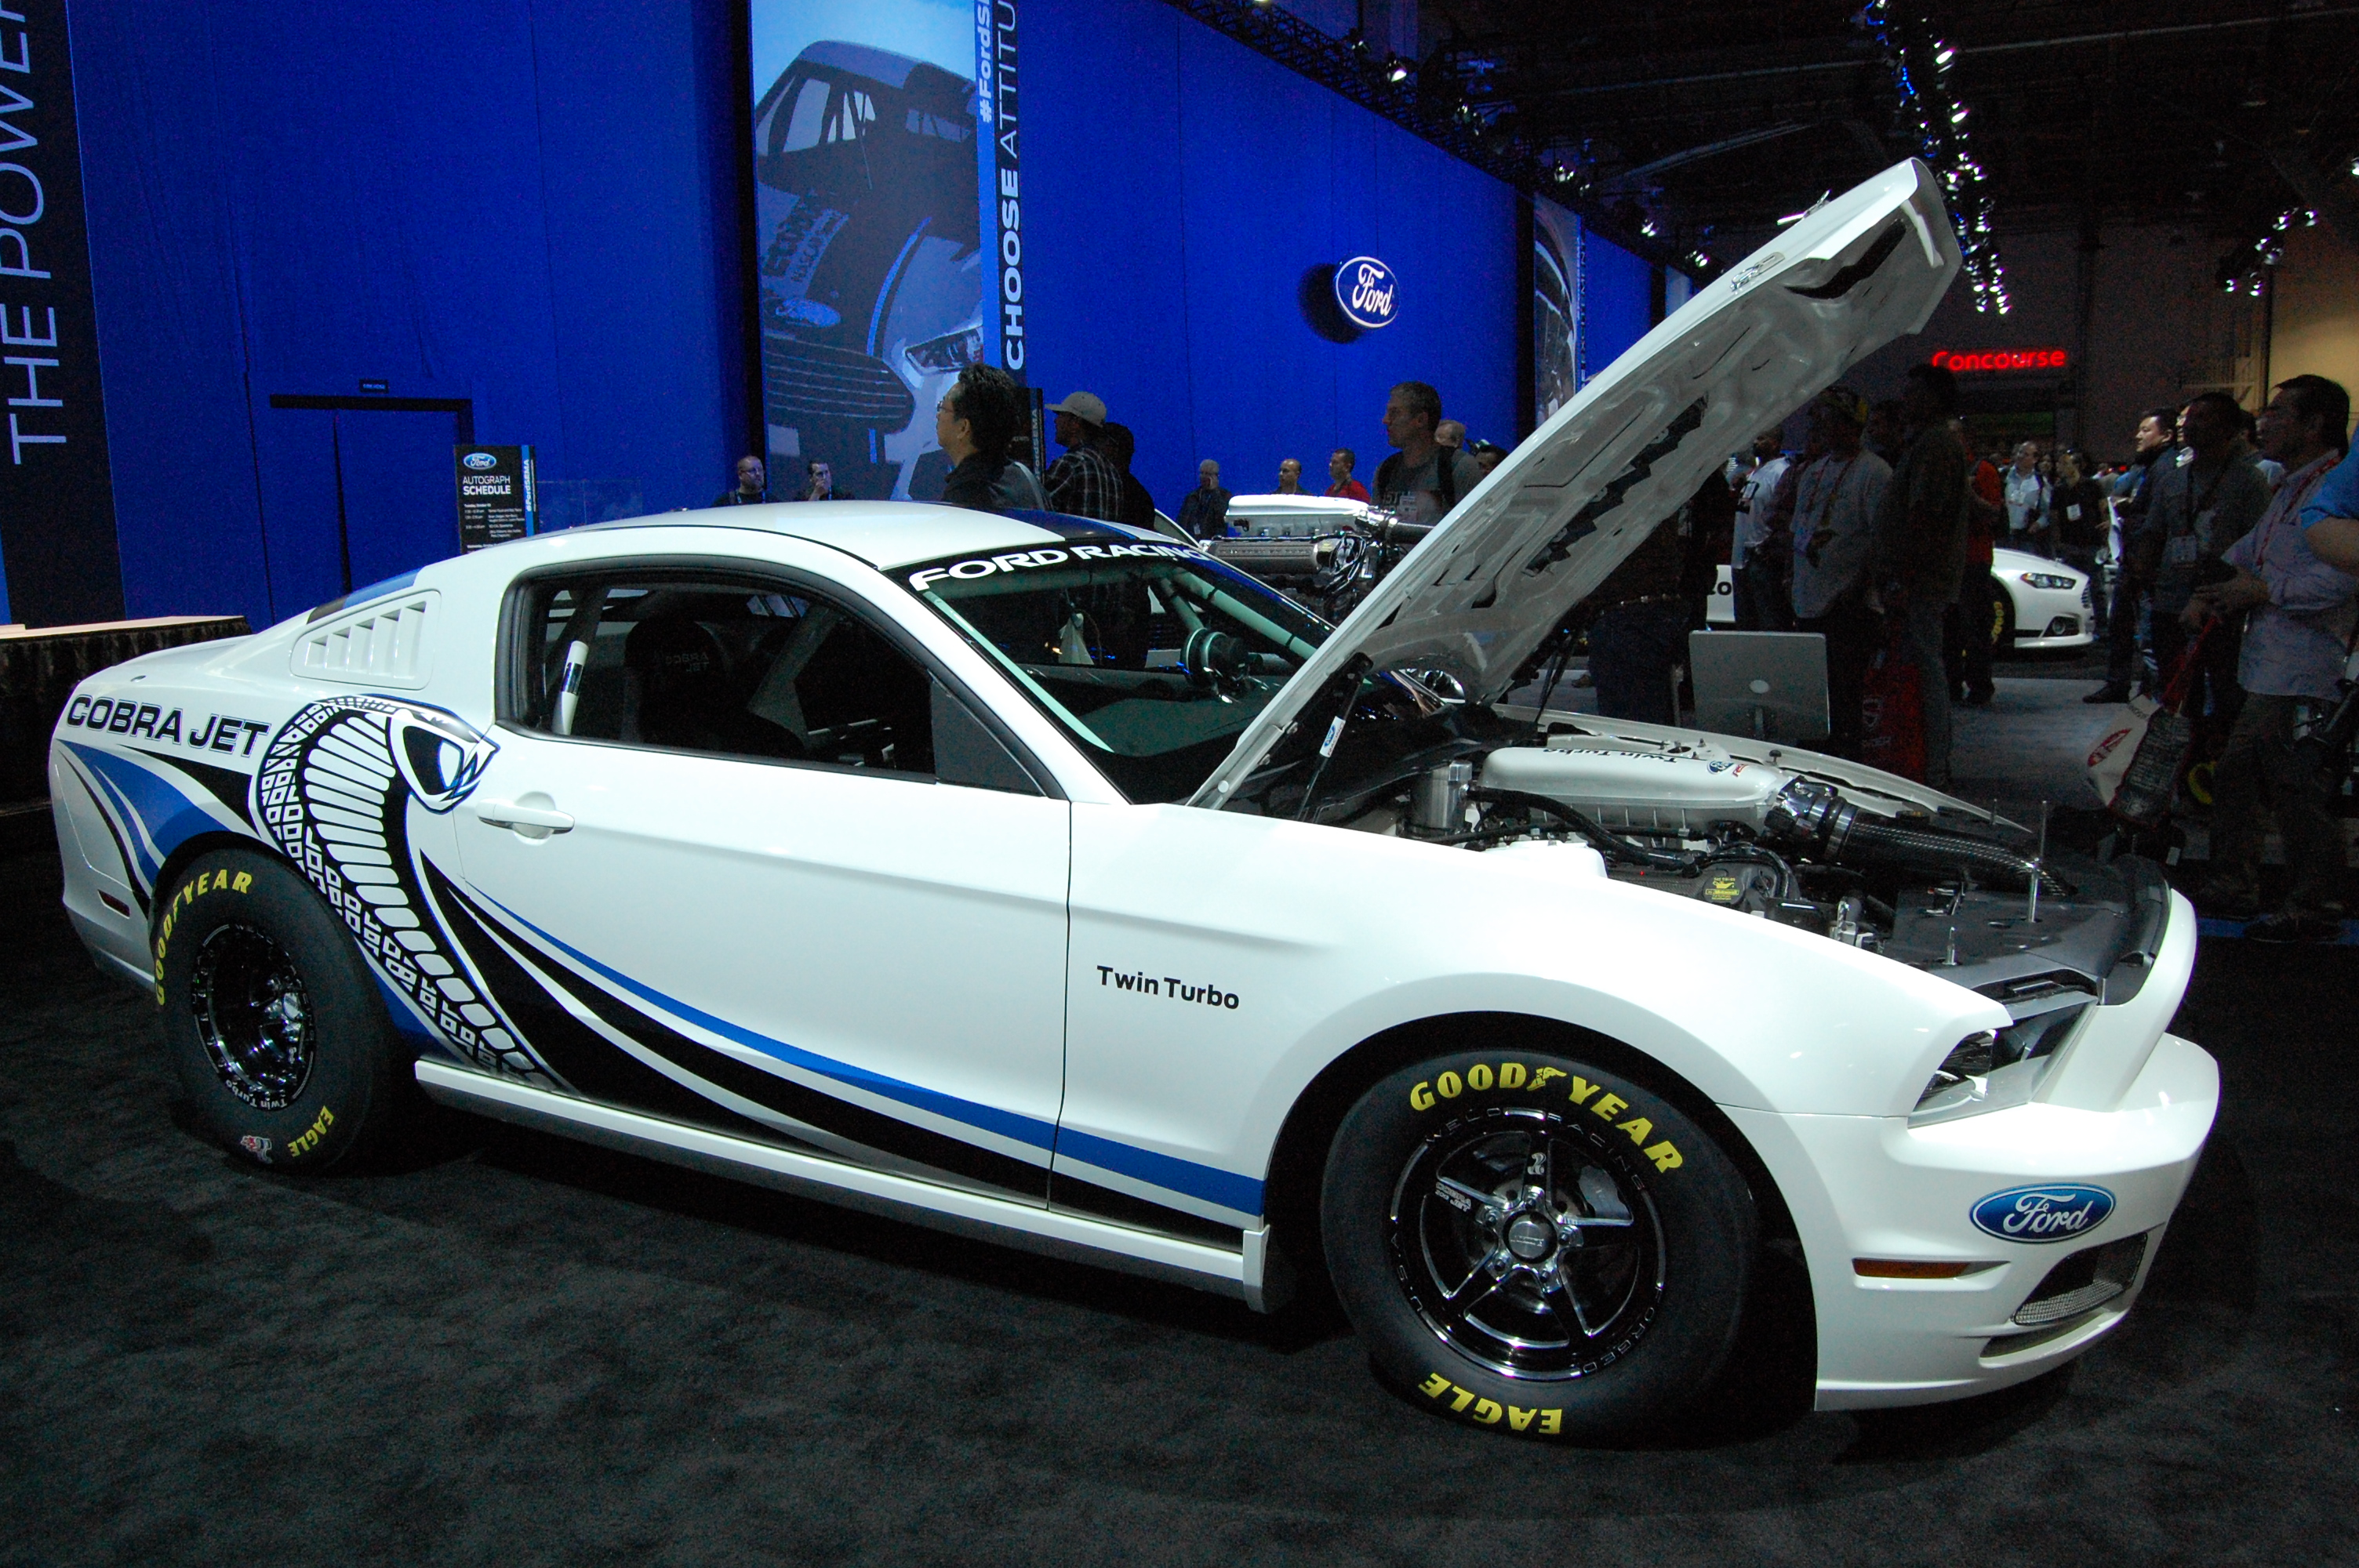 TRACK VIDEO: Unveiling of 2013 Twin-Turbo Cobra Jet Concept Mustang ...